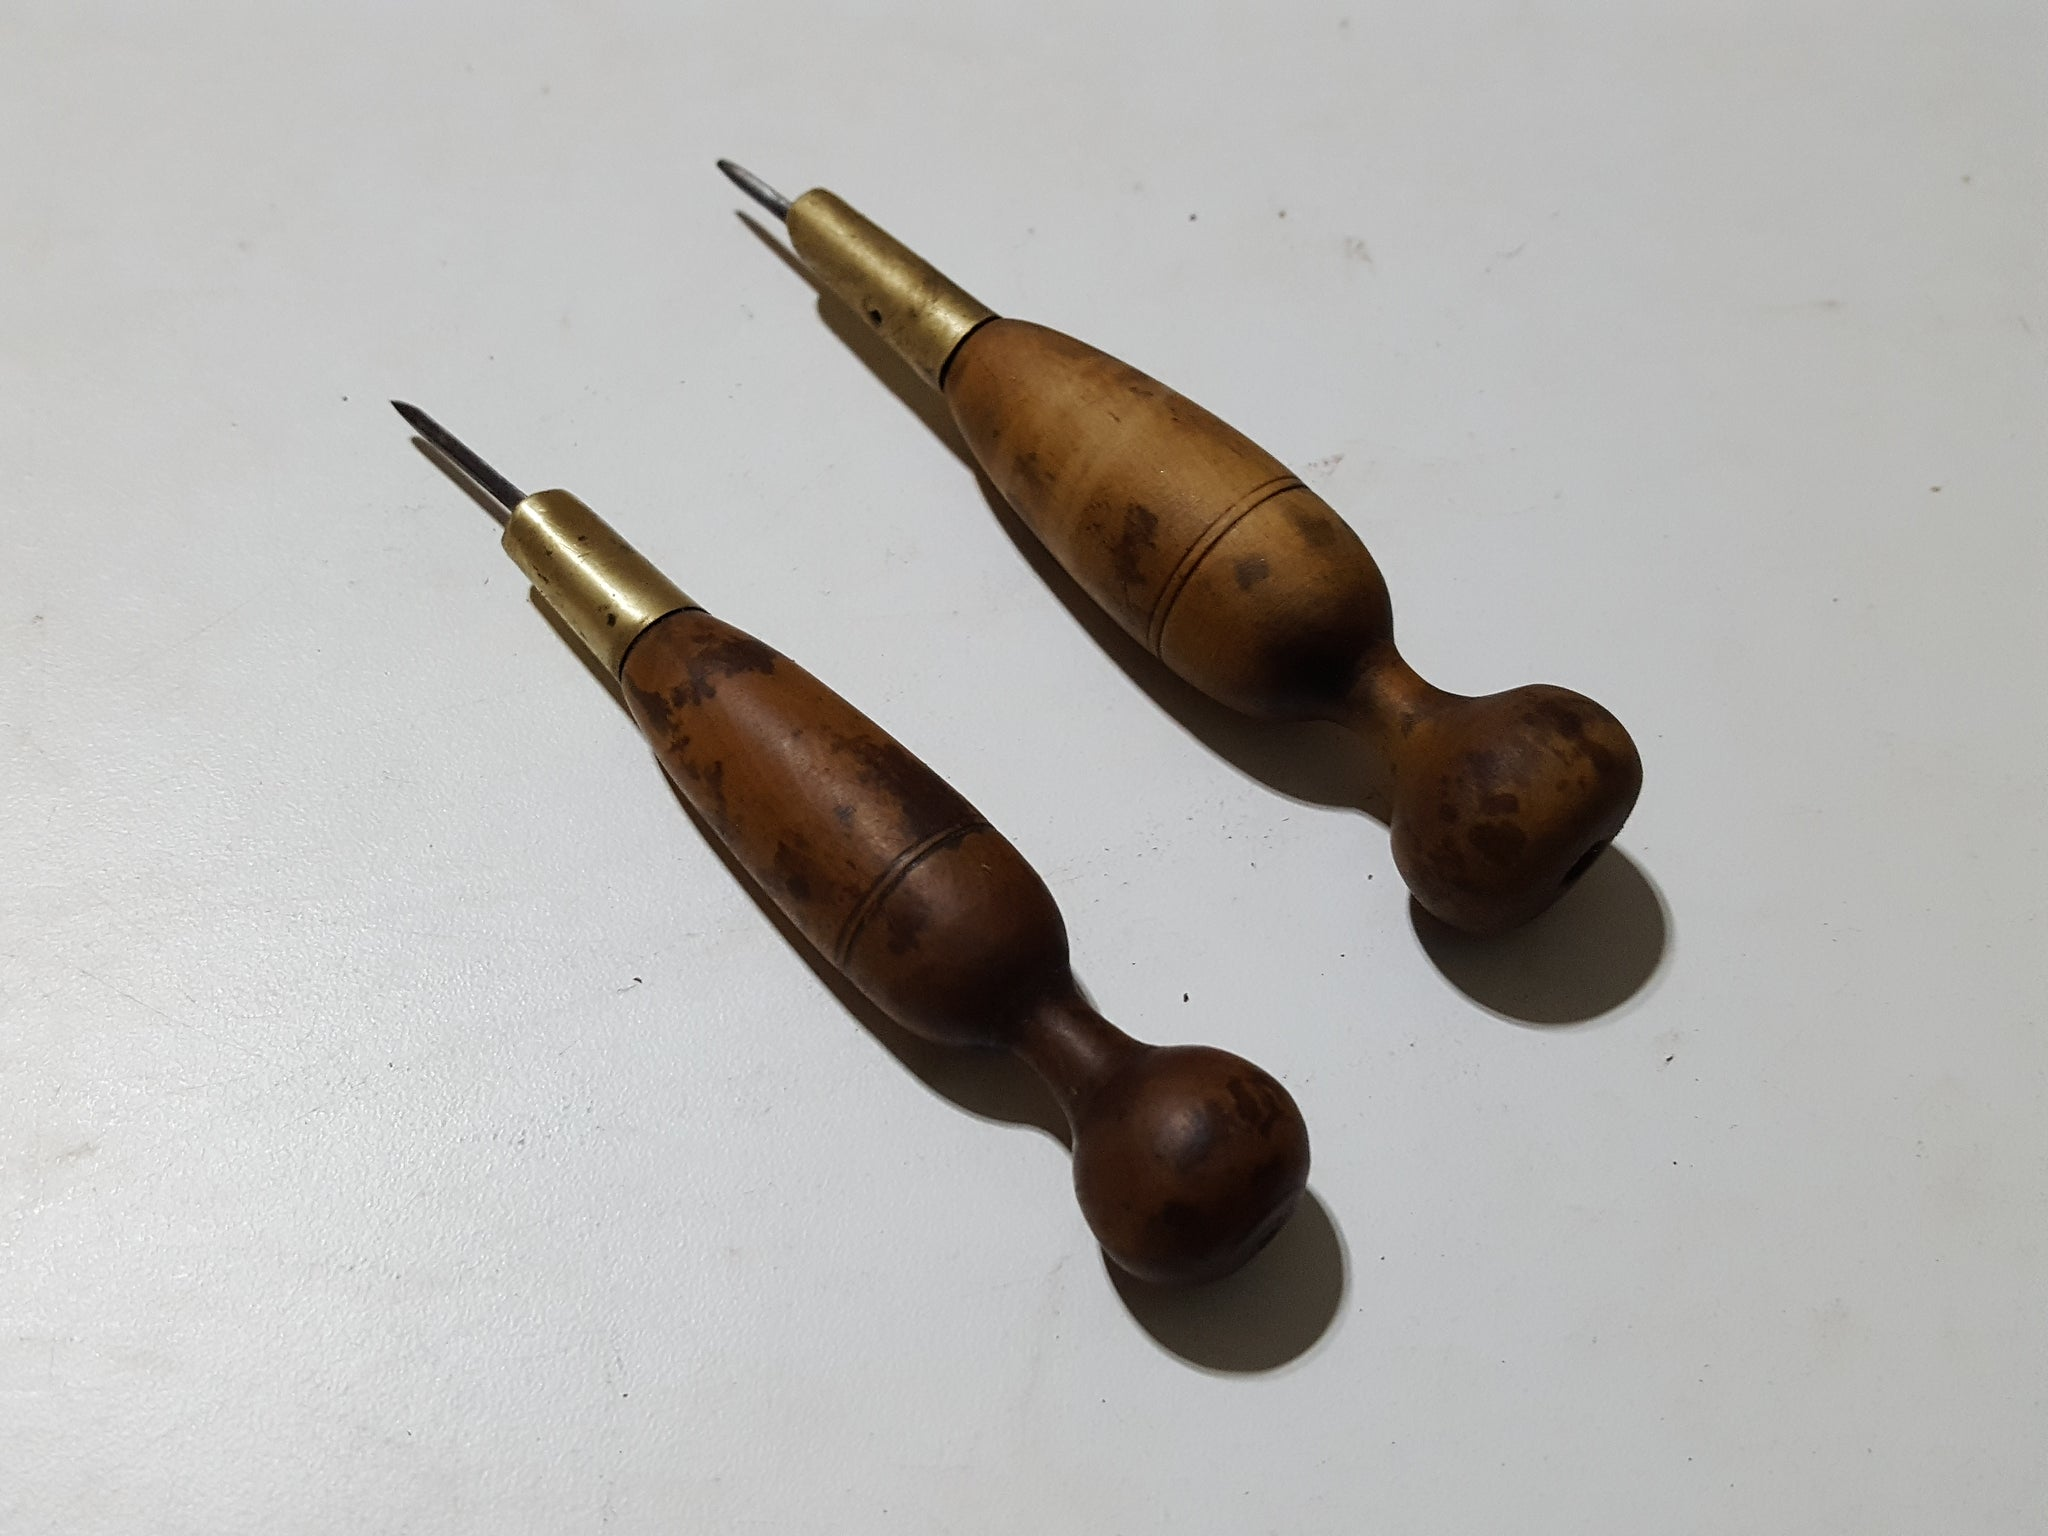 Pair of Tiny Vintage Leather Working Awls 33214